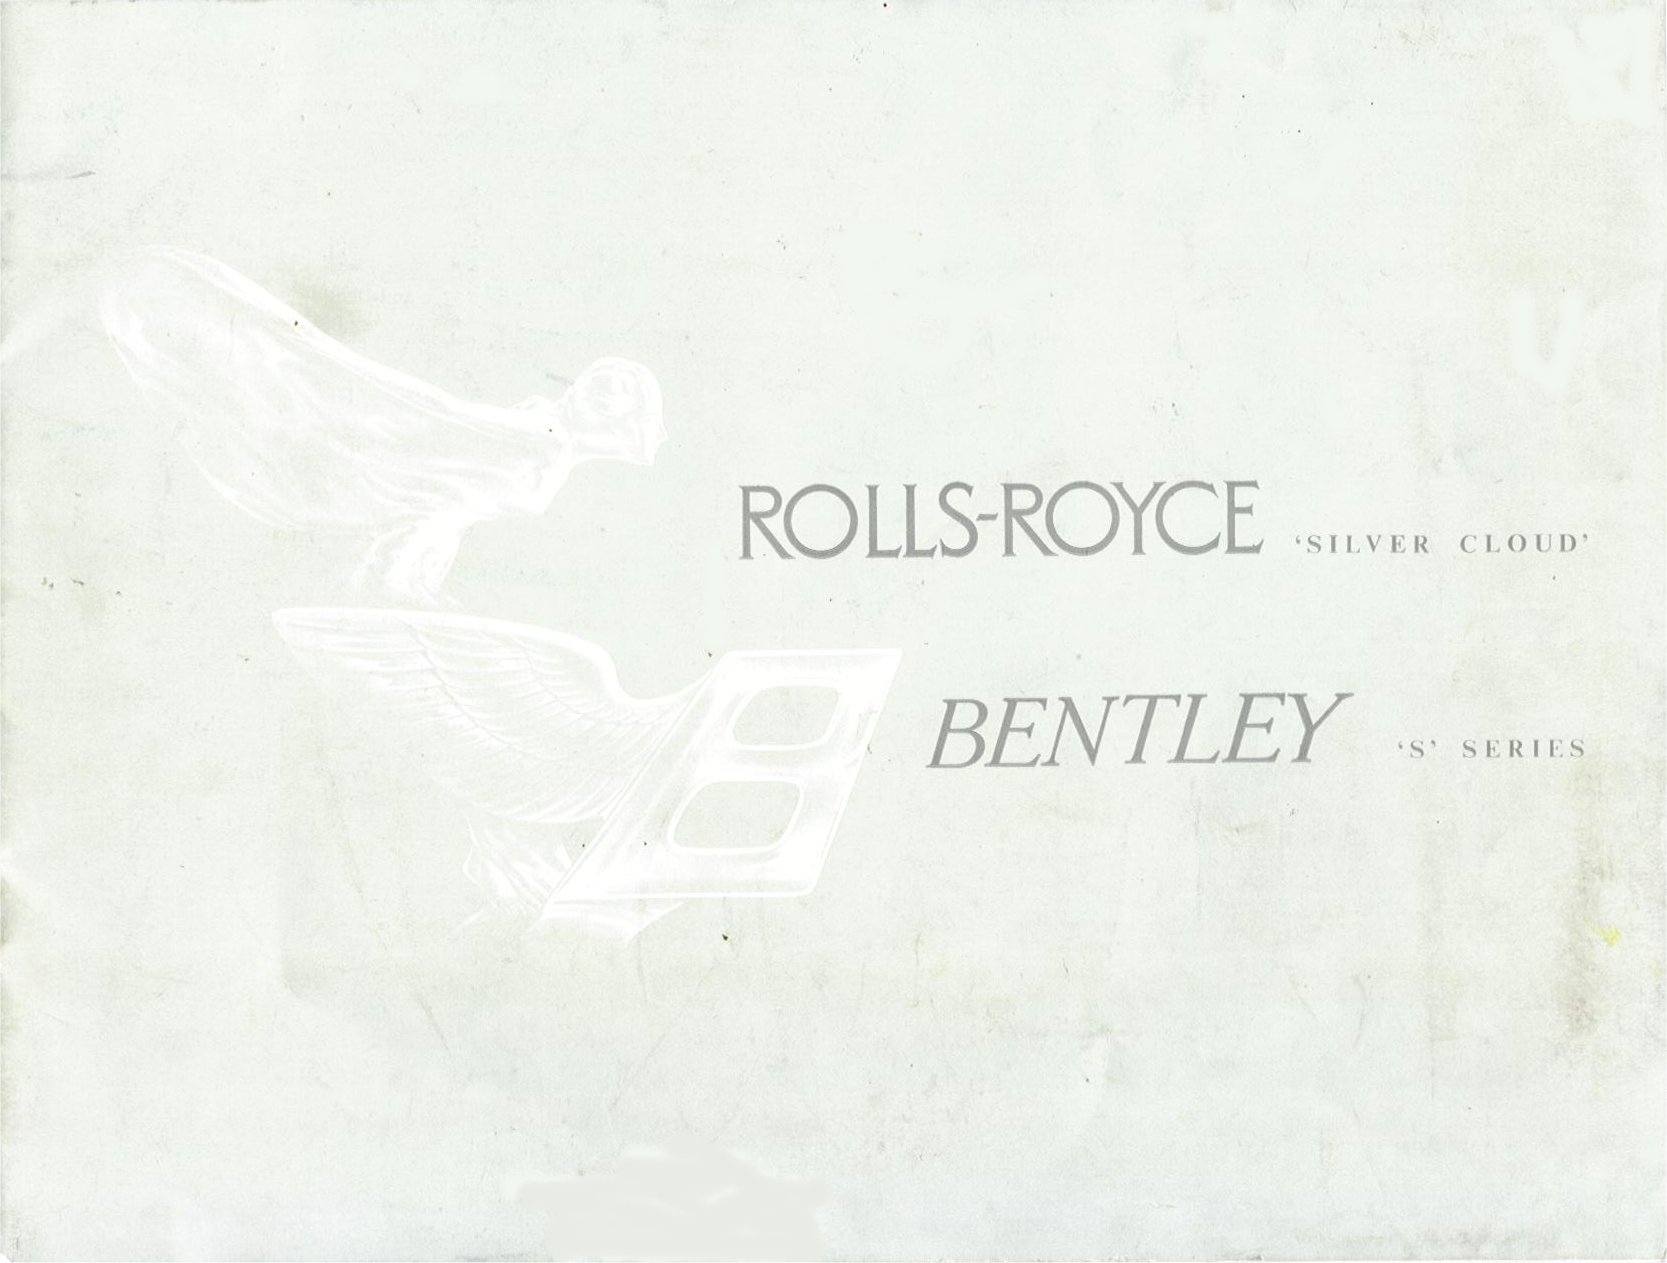 Rolls Royce Silver Cloud and Bentley S brochure